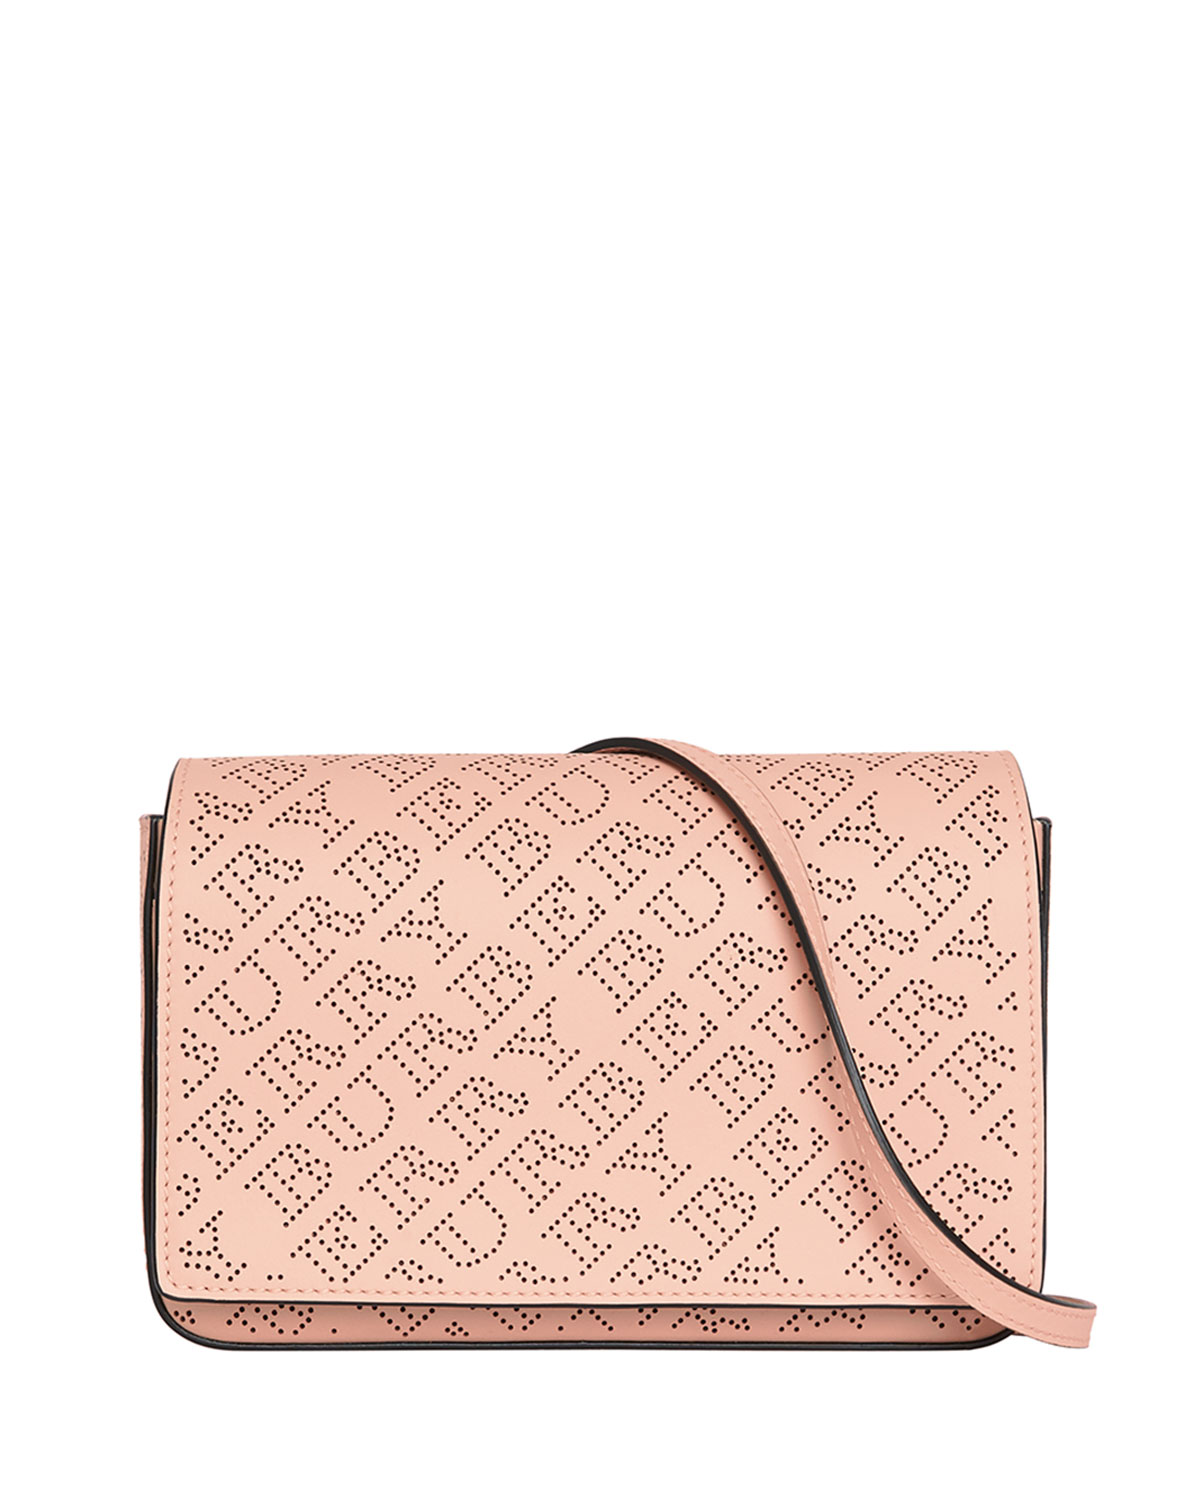 729210b953e6 Burberry Hampshire Perforated Leather Shoulder Bag